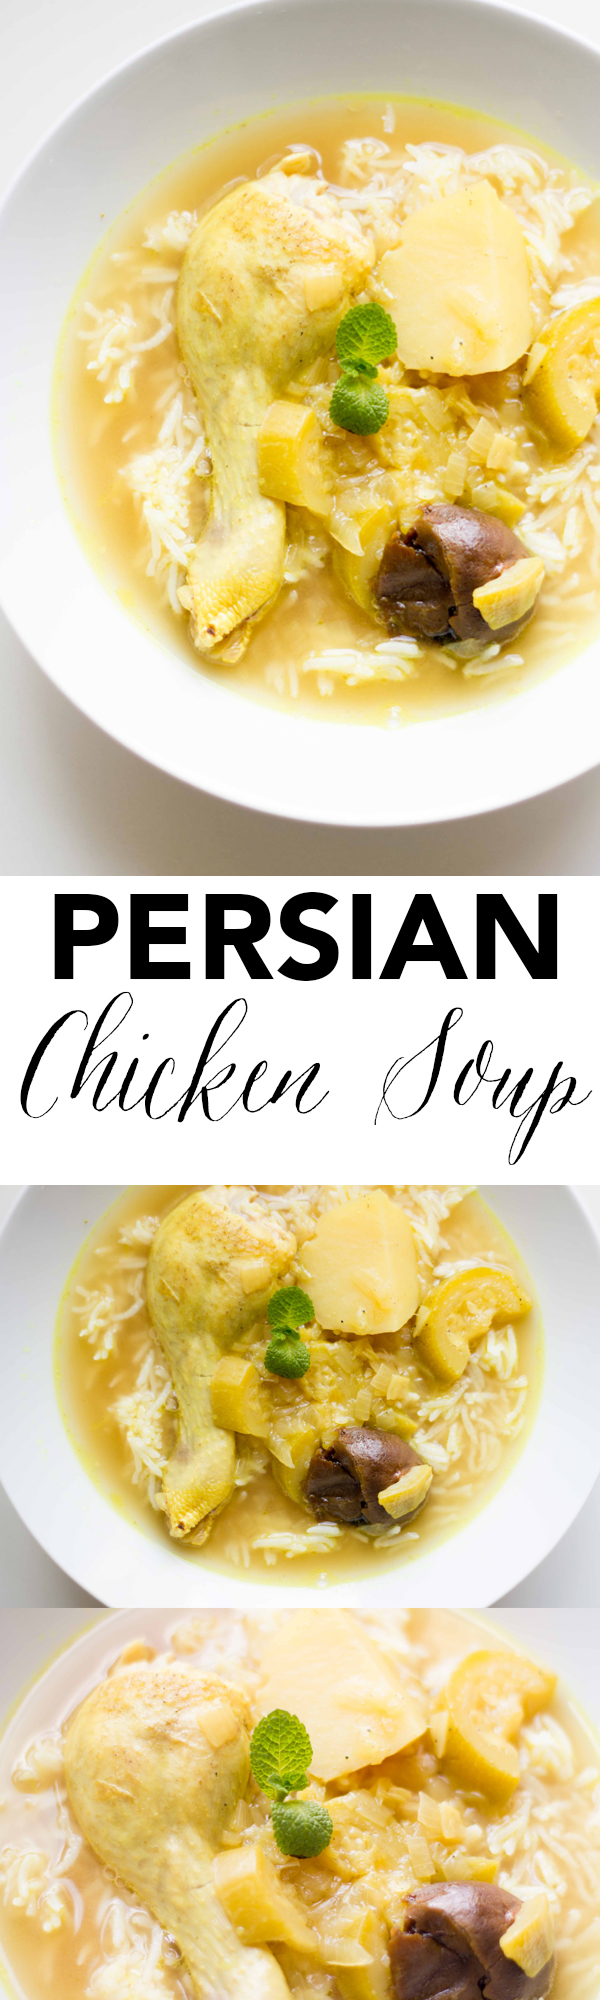 This traditional Persian Chicken Soup recipe is set apart with the addition of dried Persian limes, tangy, sour and delicious! www.seriousspice.com